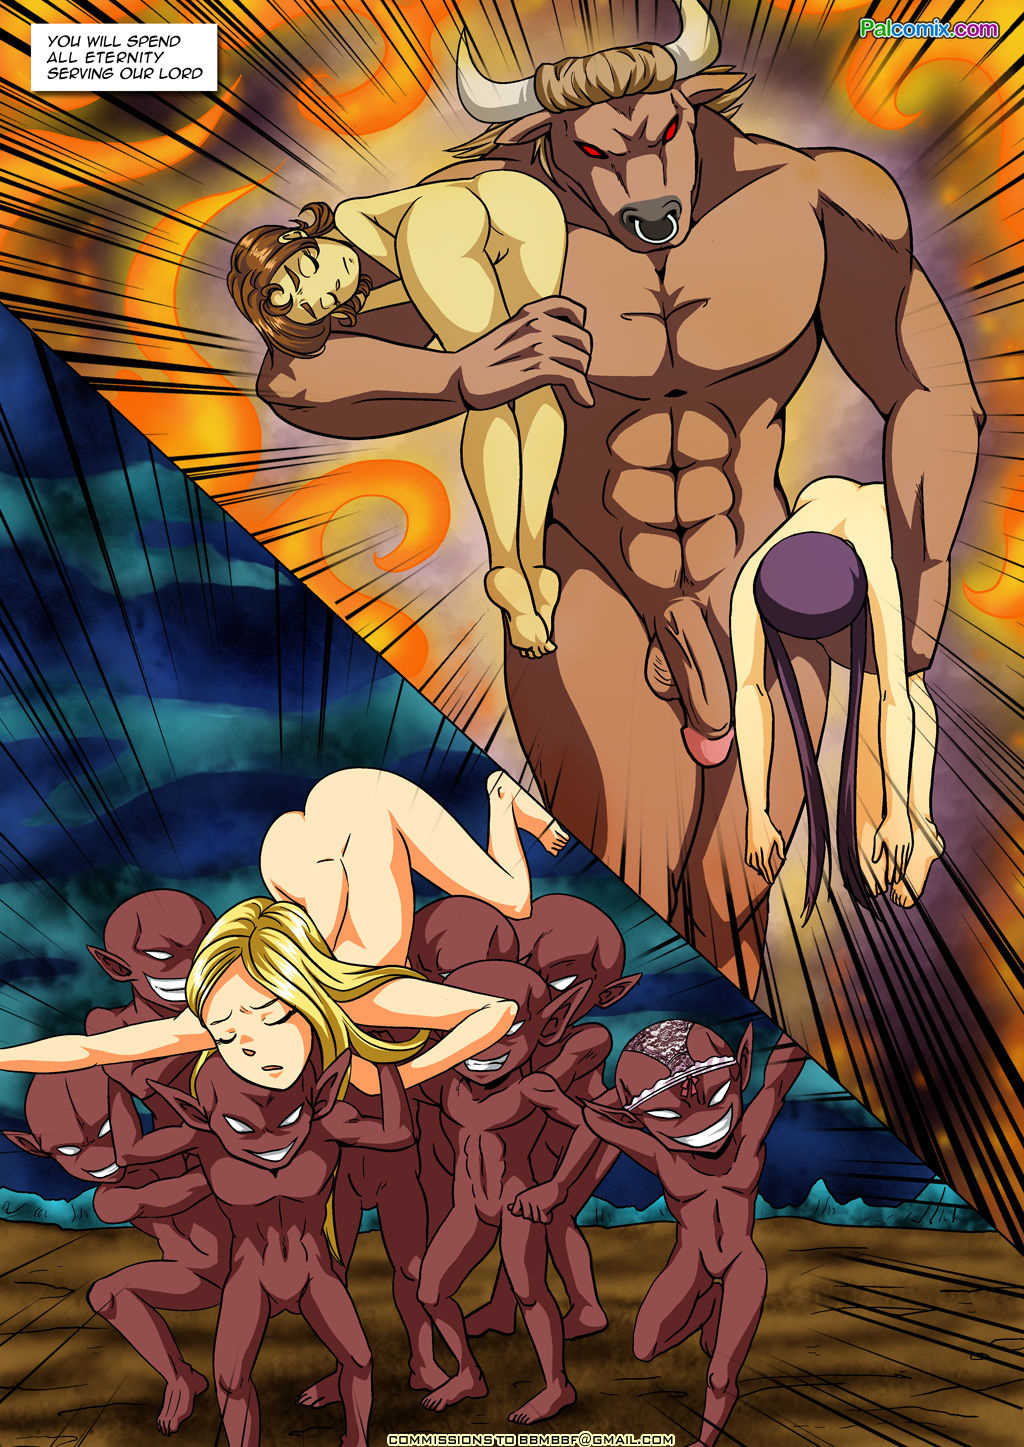 Enslaved Guardians cartoon porn Oral sex, Anal Sex, BDSM, Best, Bikini, Double Penetration, Group Sex, Kidnapping, Lesbians, Lolicon, Masturbation, Monster Girls, Rape, Sex and Magic, Sex Toys, Stockings, Tentacles